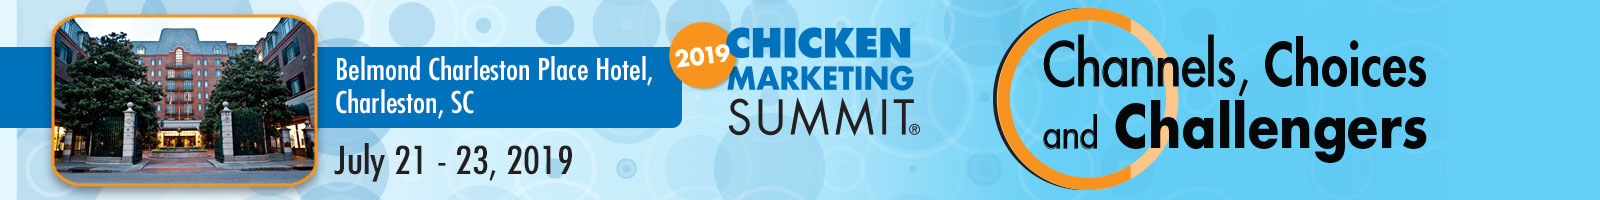 Chicken Marketing Summit 2019